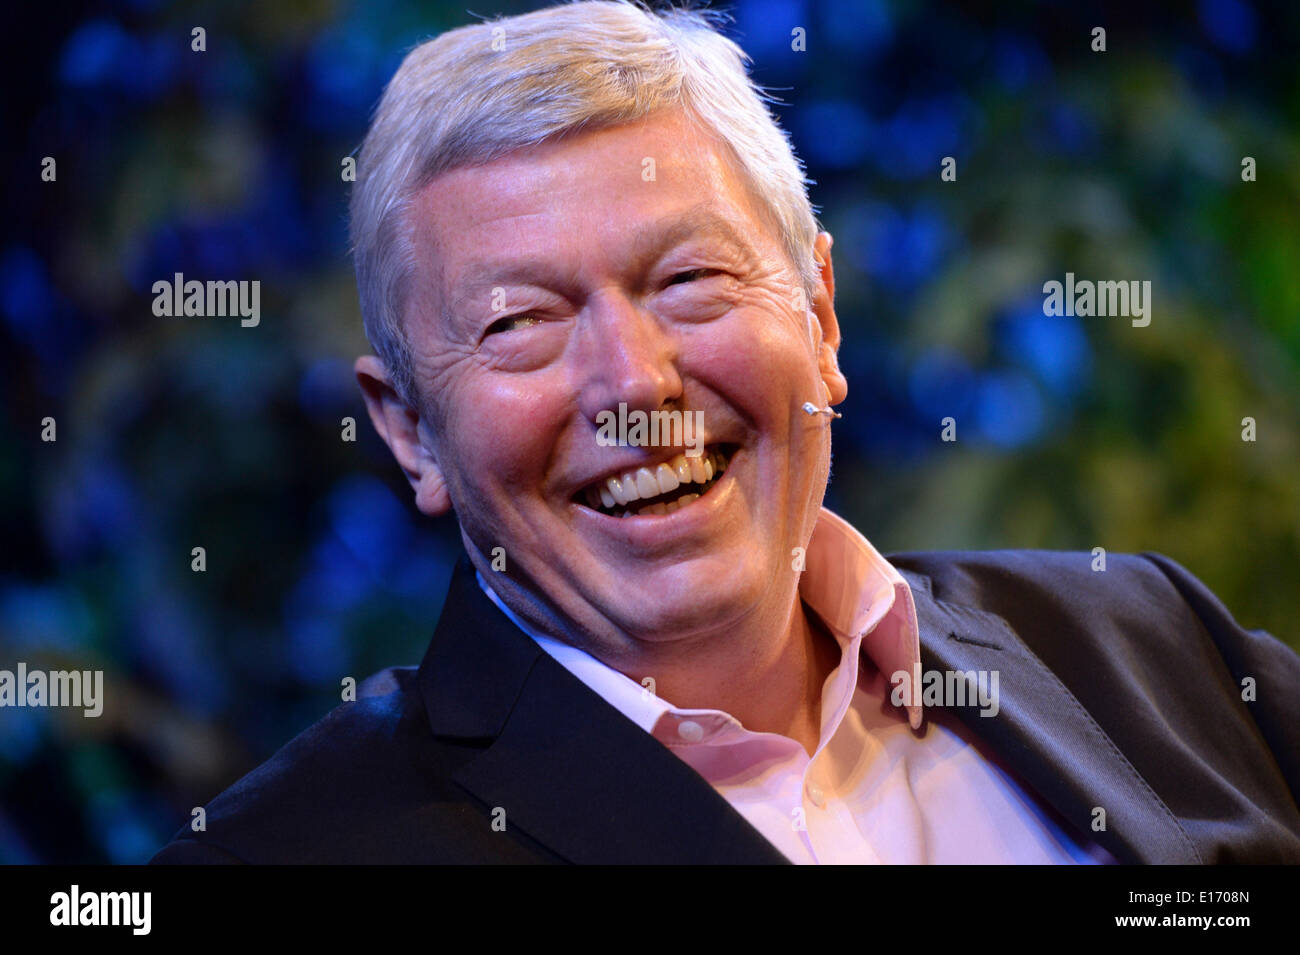 Hay on Wye, Wales UK. Sunday 25 May 2014. Former Labour cabinet member, and Orwell Prize winning author, ALAN JOHNSON ton the fourth day of the 2014 Daily Telegraph Hay Literature Festival, Wales UK photo Credit: keith morris/Alamy Live News - Stock Image